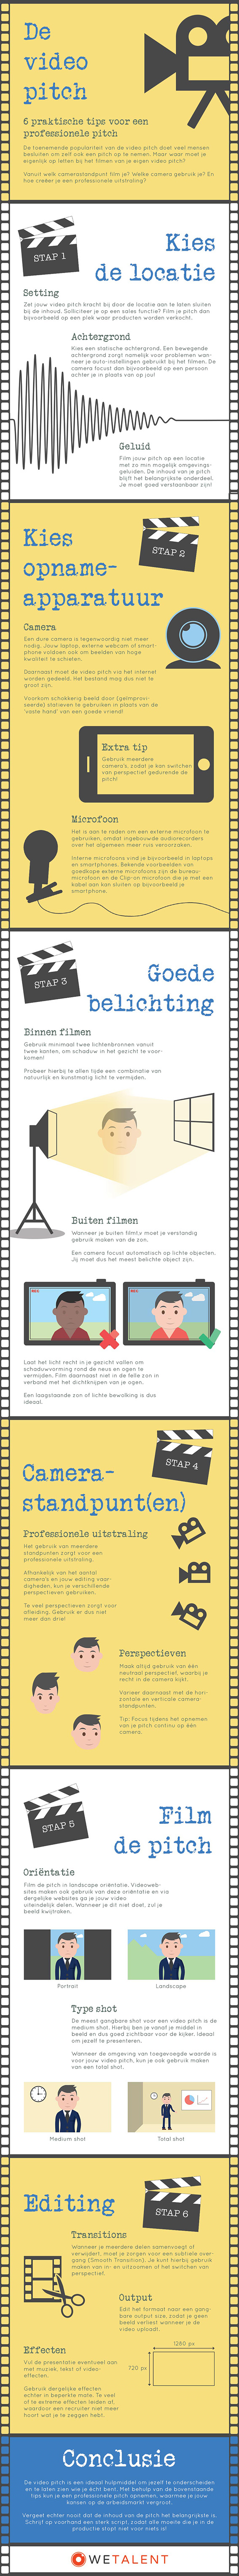 Maak in 6 stappen een professionele video pitch infographic